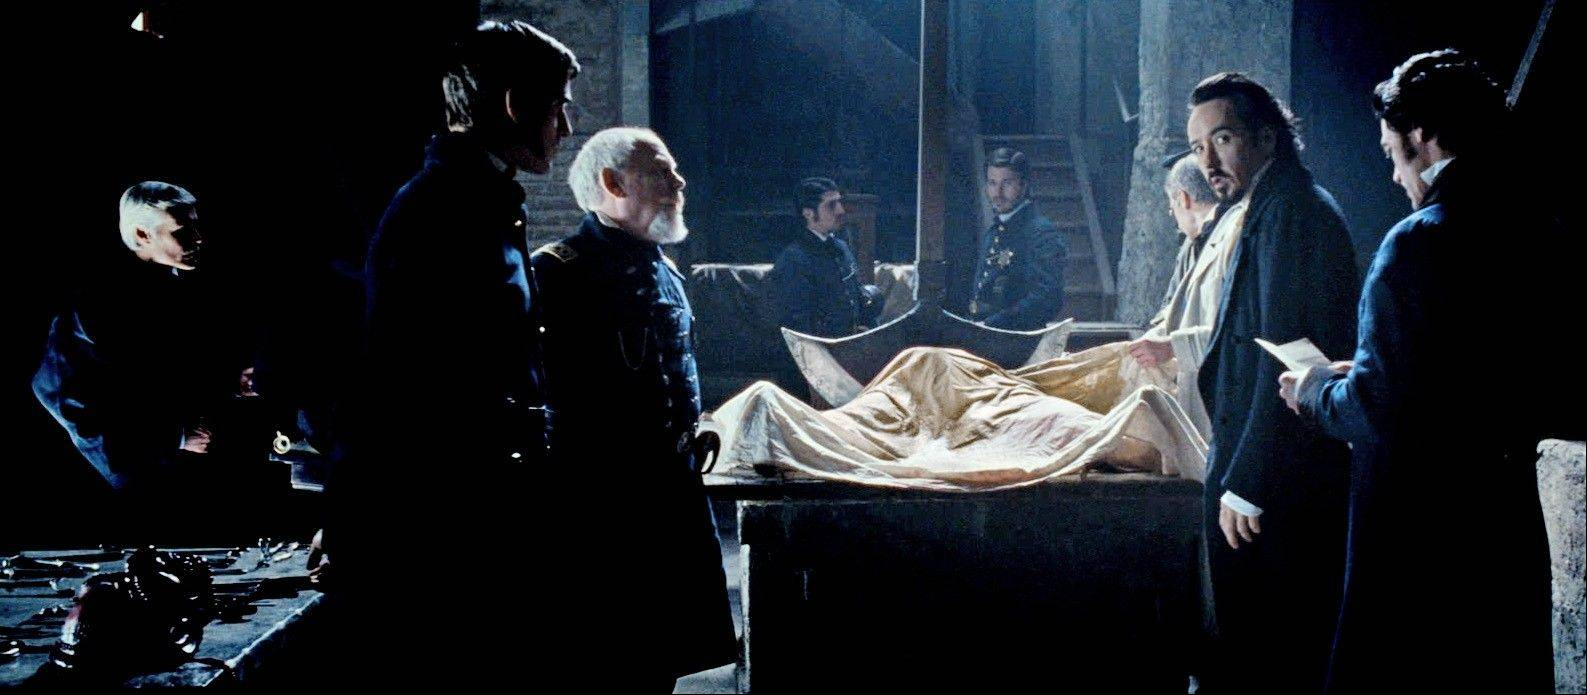 Edgar Allan Poe (John Cusack), right, examines a crime scene involving a device from his literary creation.